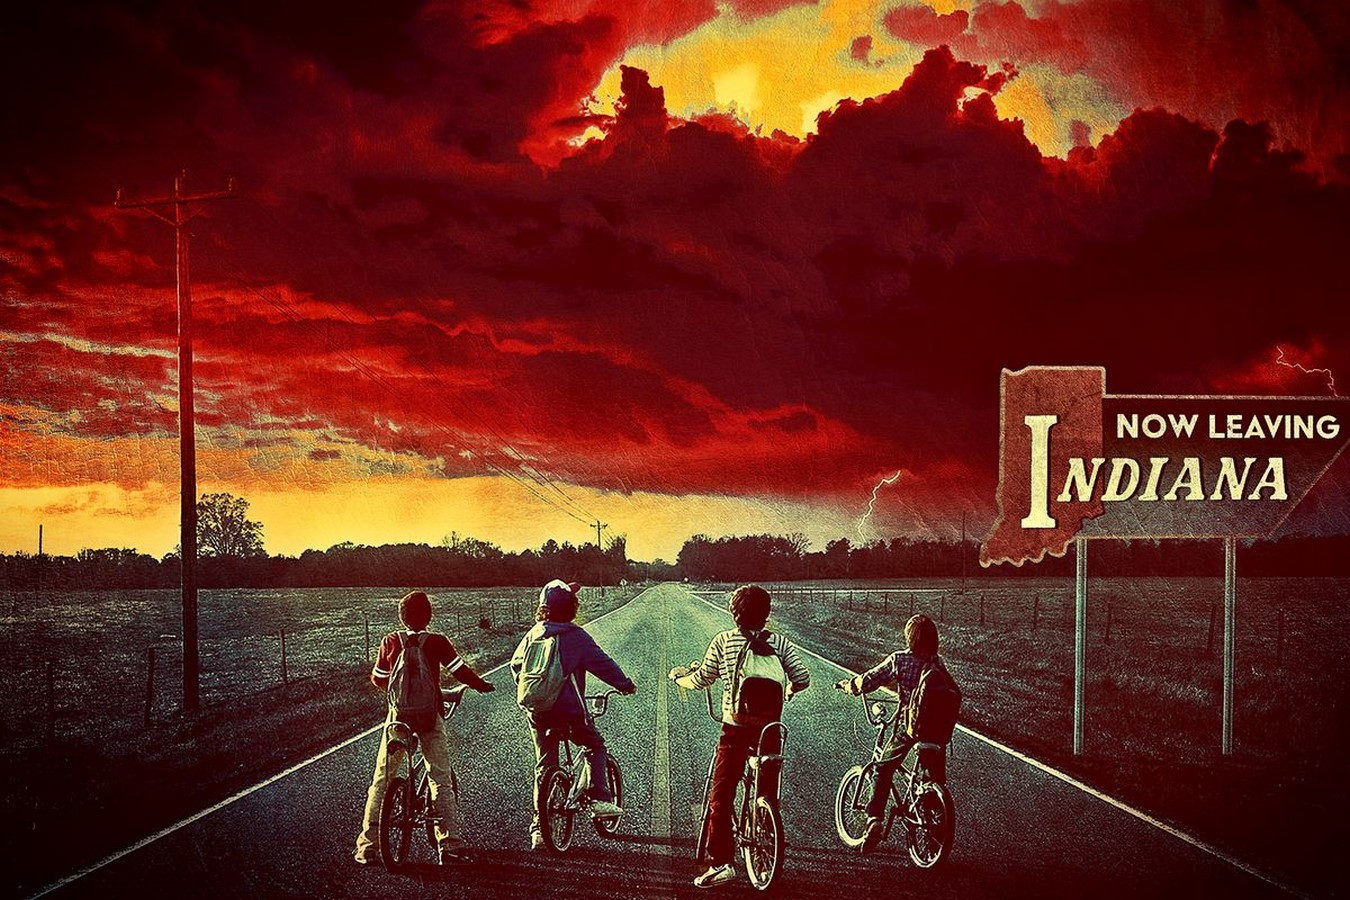 Stranger Things Directed by - The Duff brothers and Shawn Levy. - Sheet2